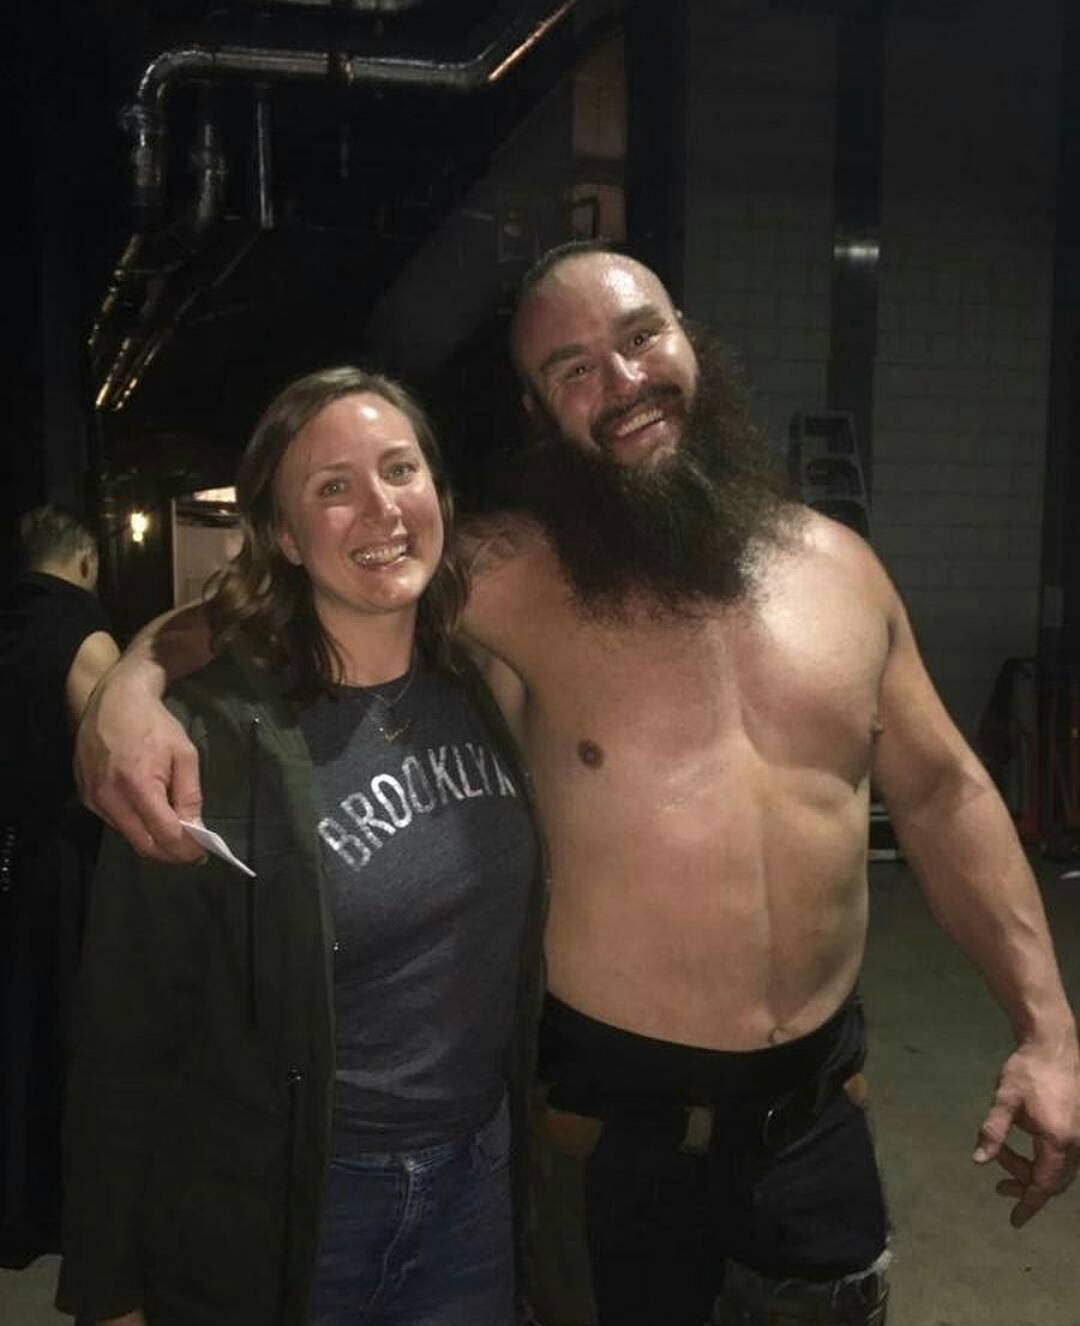 Braun Strowman with his sister backstage at Raw